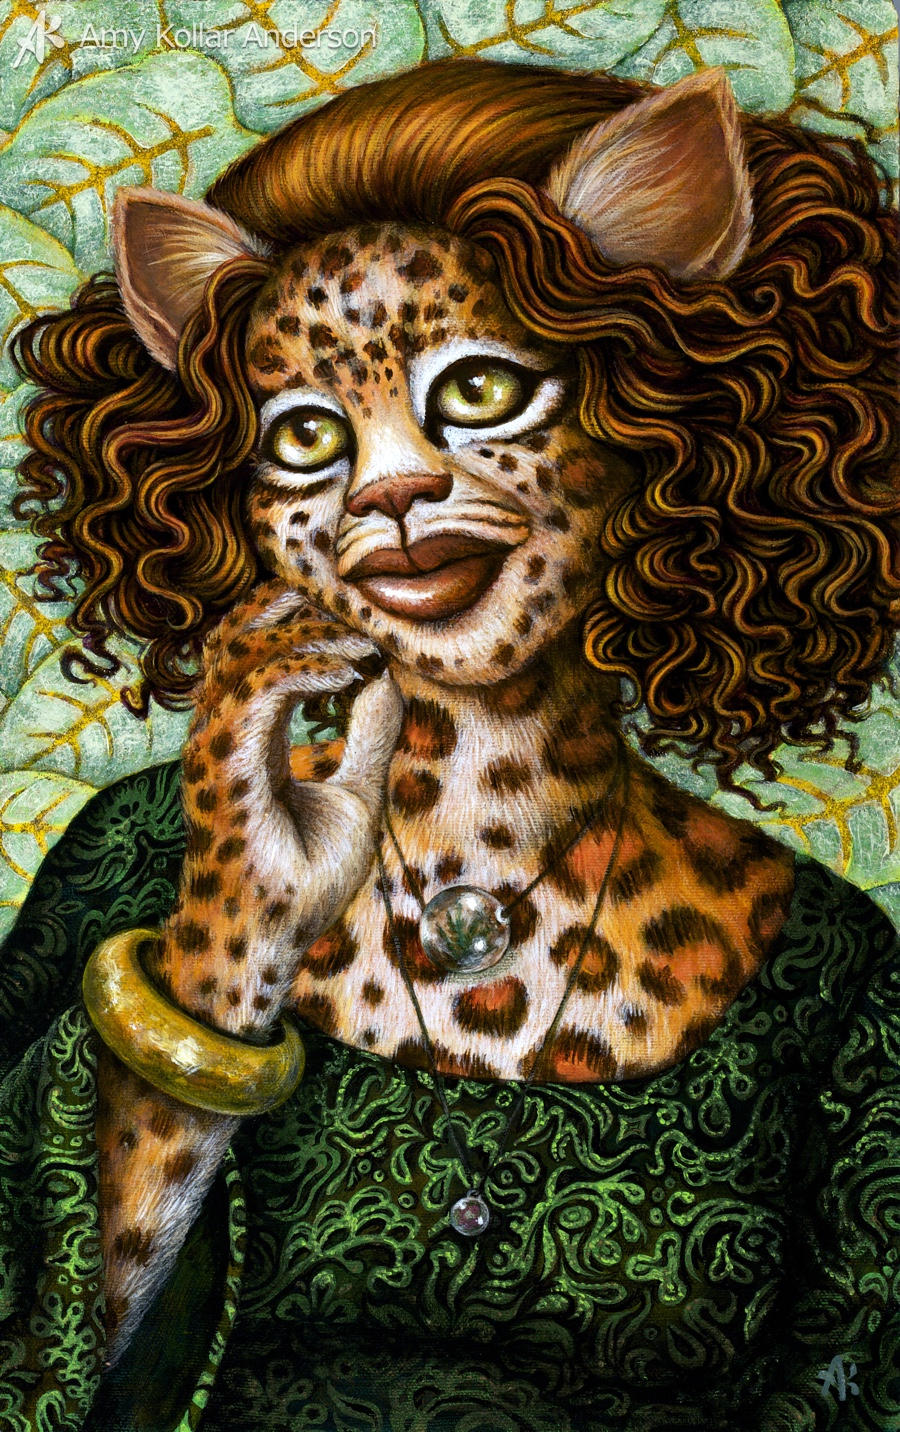 Ixchel, a painting from 2010, before I knew of her Isla Mujeres connection.